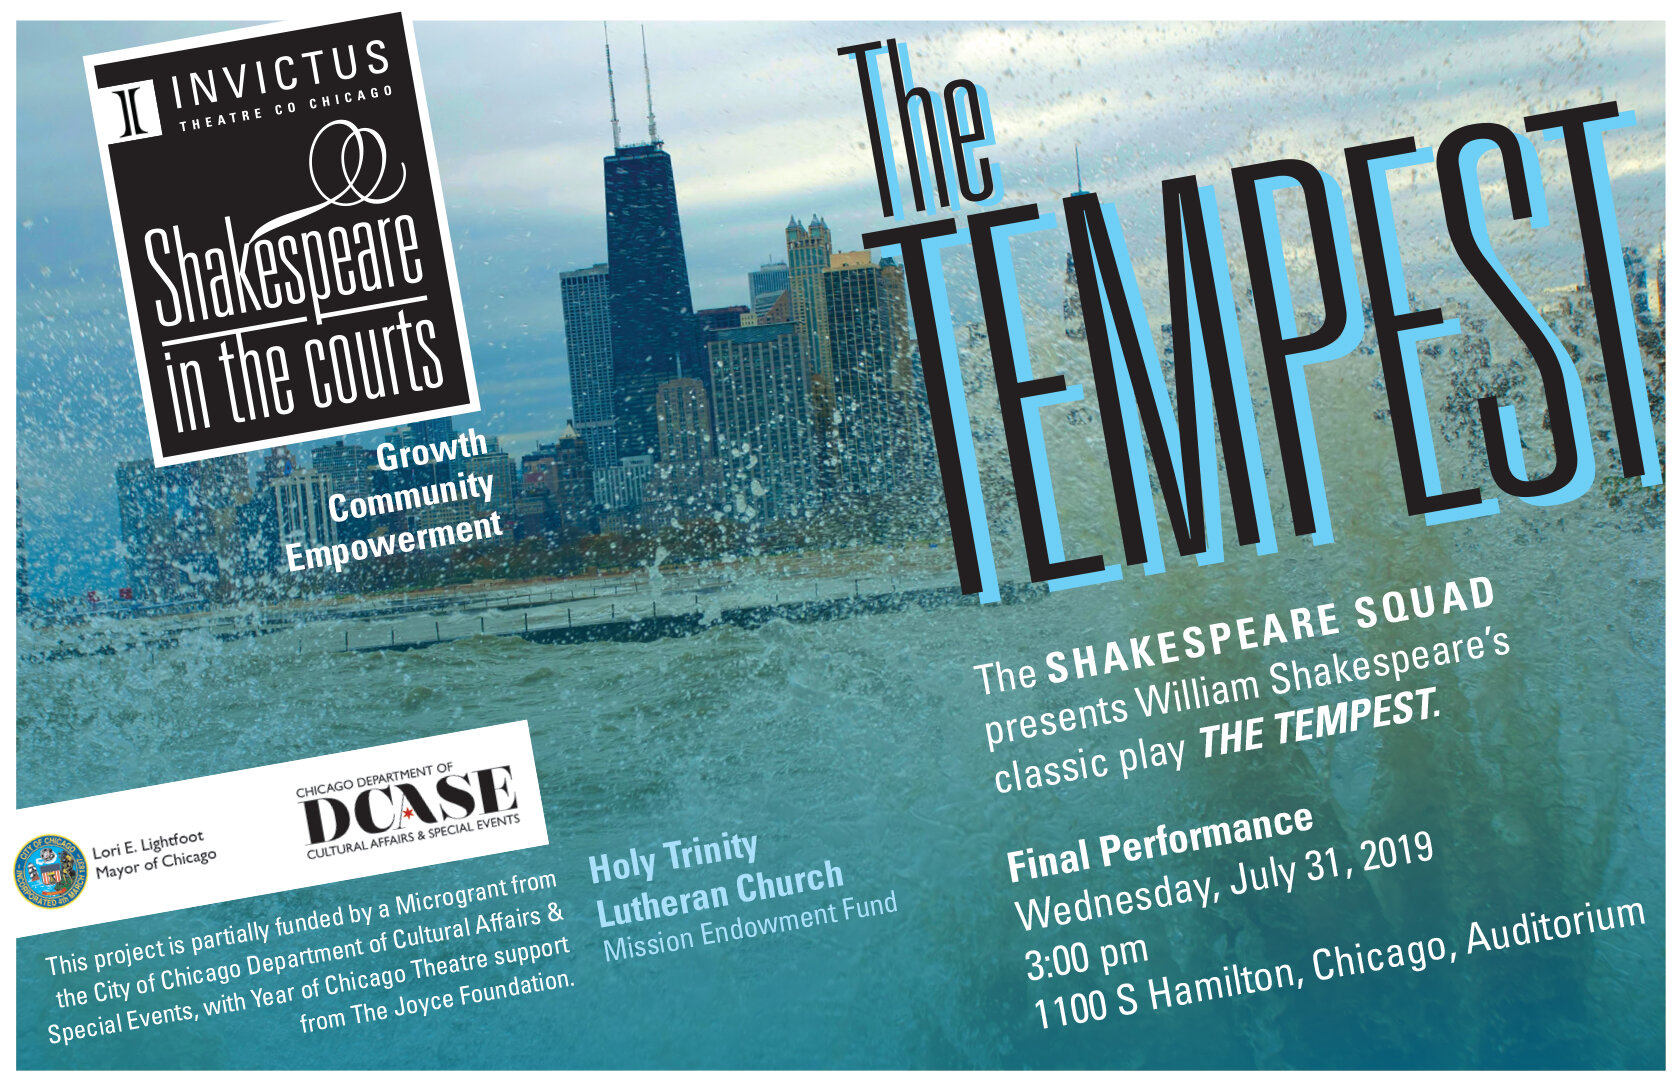 Shakespeare in the Courts Final Performance - July 31, 20193:00pm1100 S Hamilton, Chicago (Auditorium space)Invictus Theatre Company proudly presents our second annual culminating performance of our Shakespeare in the Courts program. Our Shakespeare Squad youth ensemble will present The Tempest.Shakespeare in the Courts is Invictus's outreach program that pairs theatre educators with youth who are involved in the Cook County justice system. The ensemble spends six weeks studying and rehearsing Shakespeare, and our goal is to create an inclusive, positive, and consistent experience. Transportation is provided to and from the rehearsal and performance spaces, and in addition to Invictus educators running the rehearsals, professional designers work with our ensemble to provide performance elements such as costumes and props.